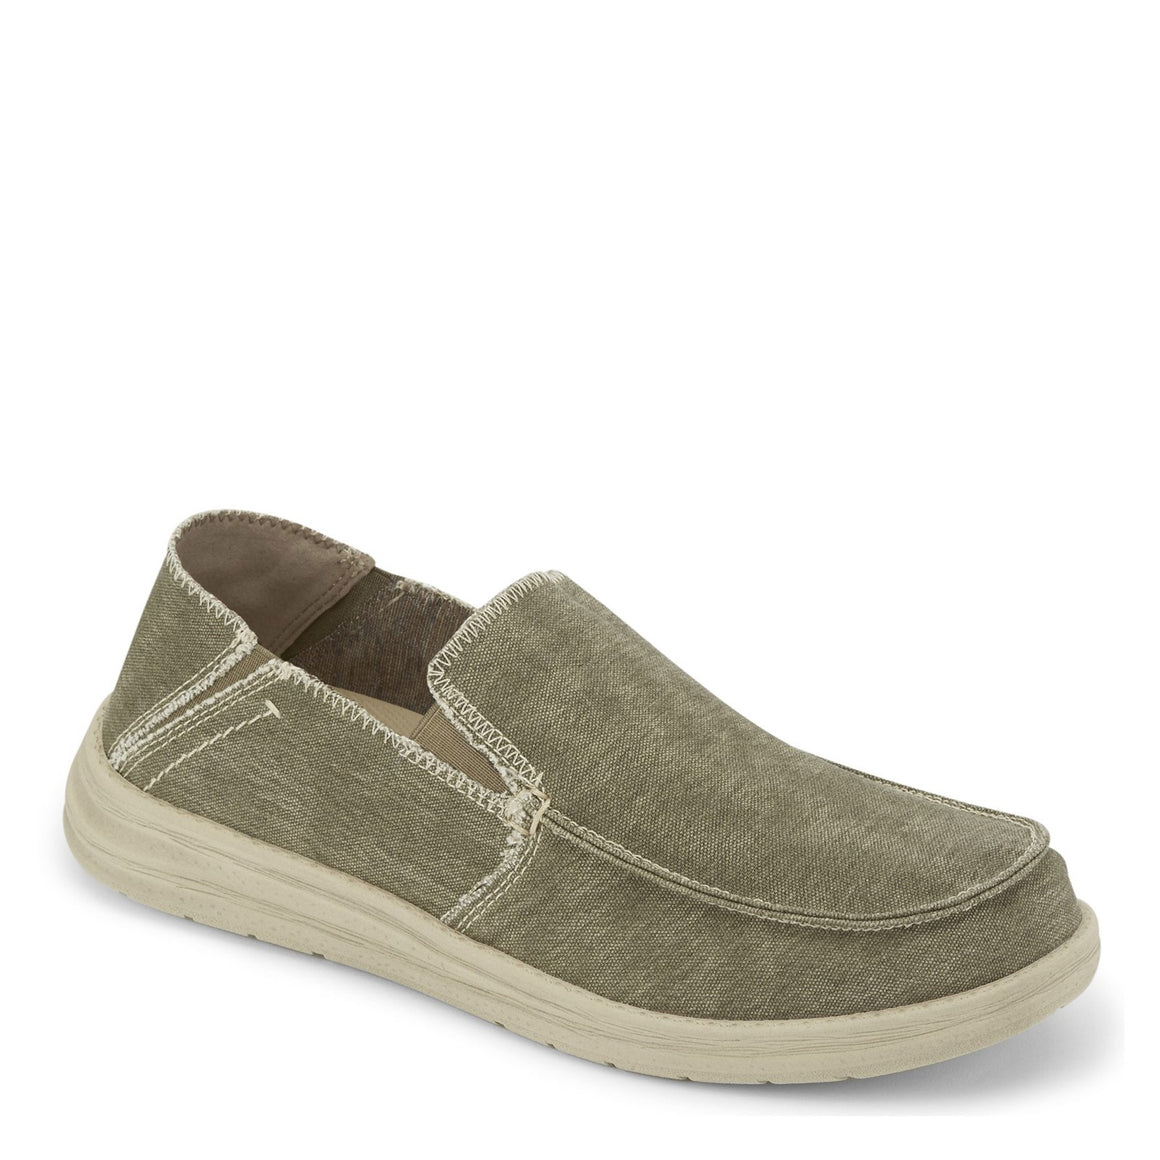 Dockers Men's Ferris Casual Slip On Shoe - Olive 90-42507